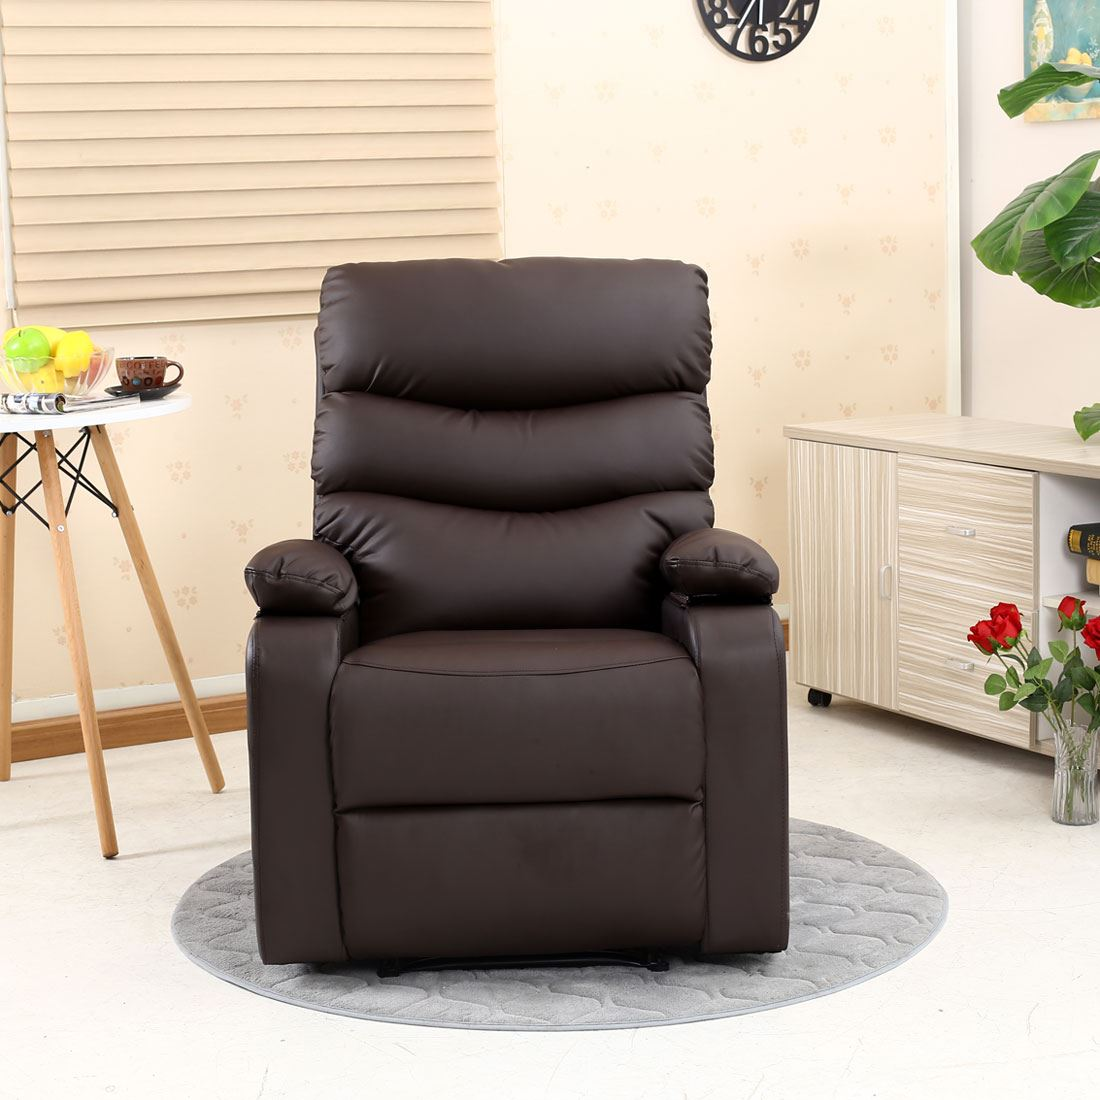 Ashby Leather Recliner Armchair Sofa Home Lounge Chair